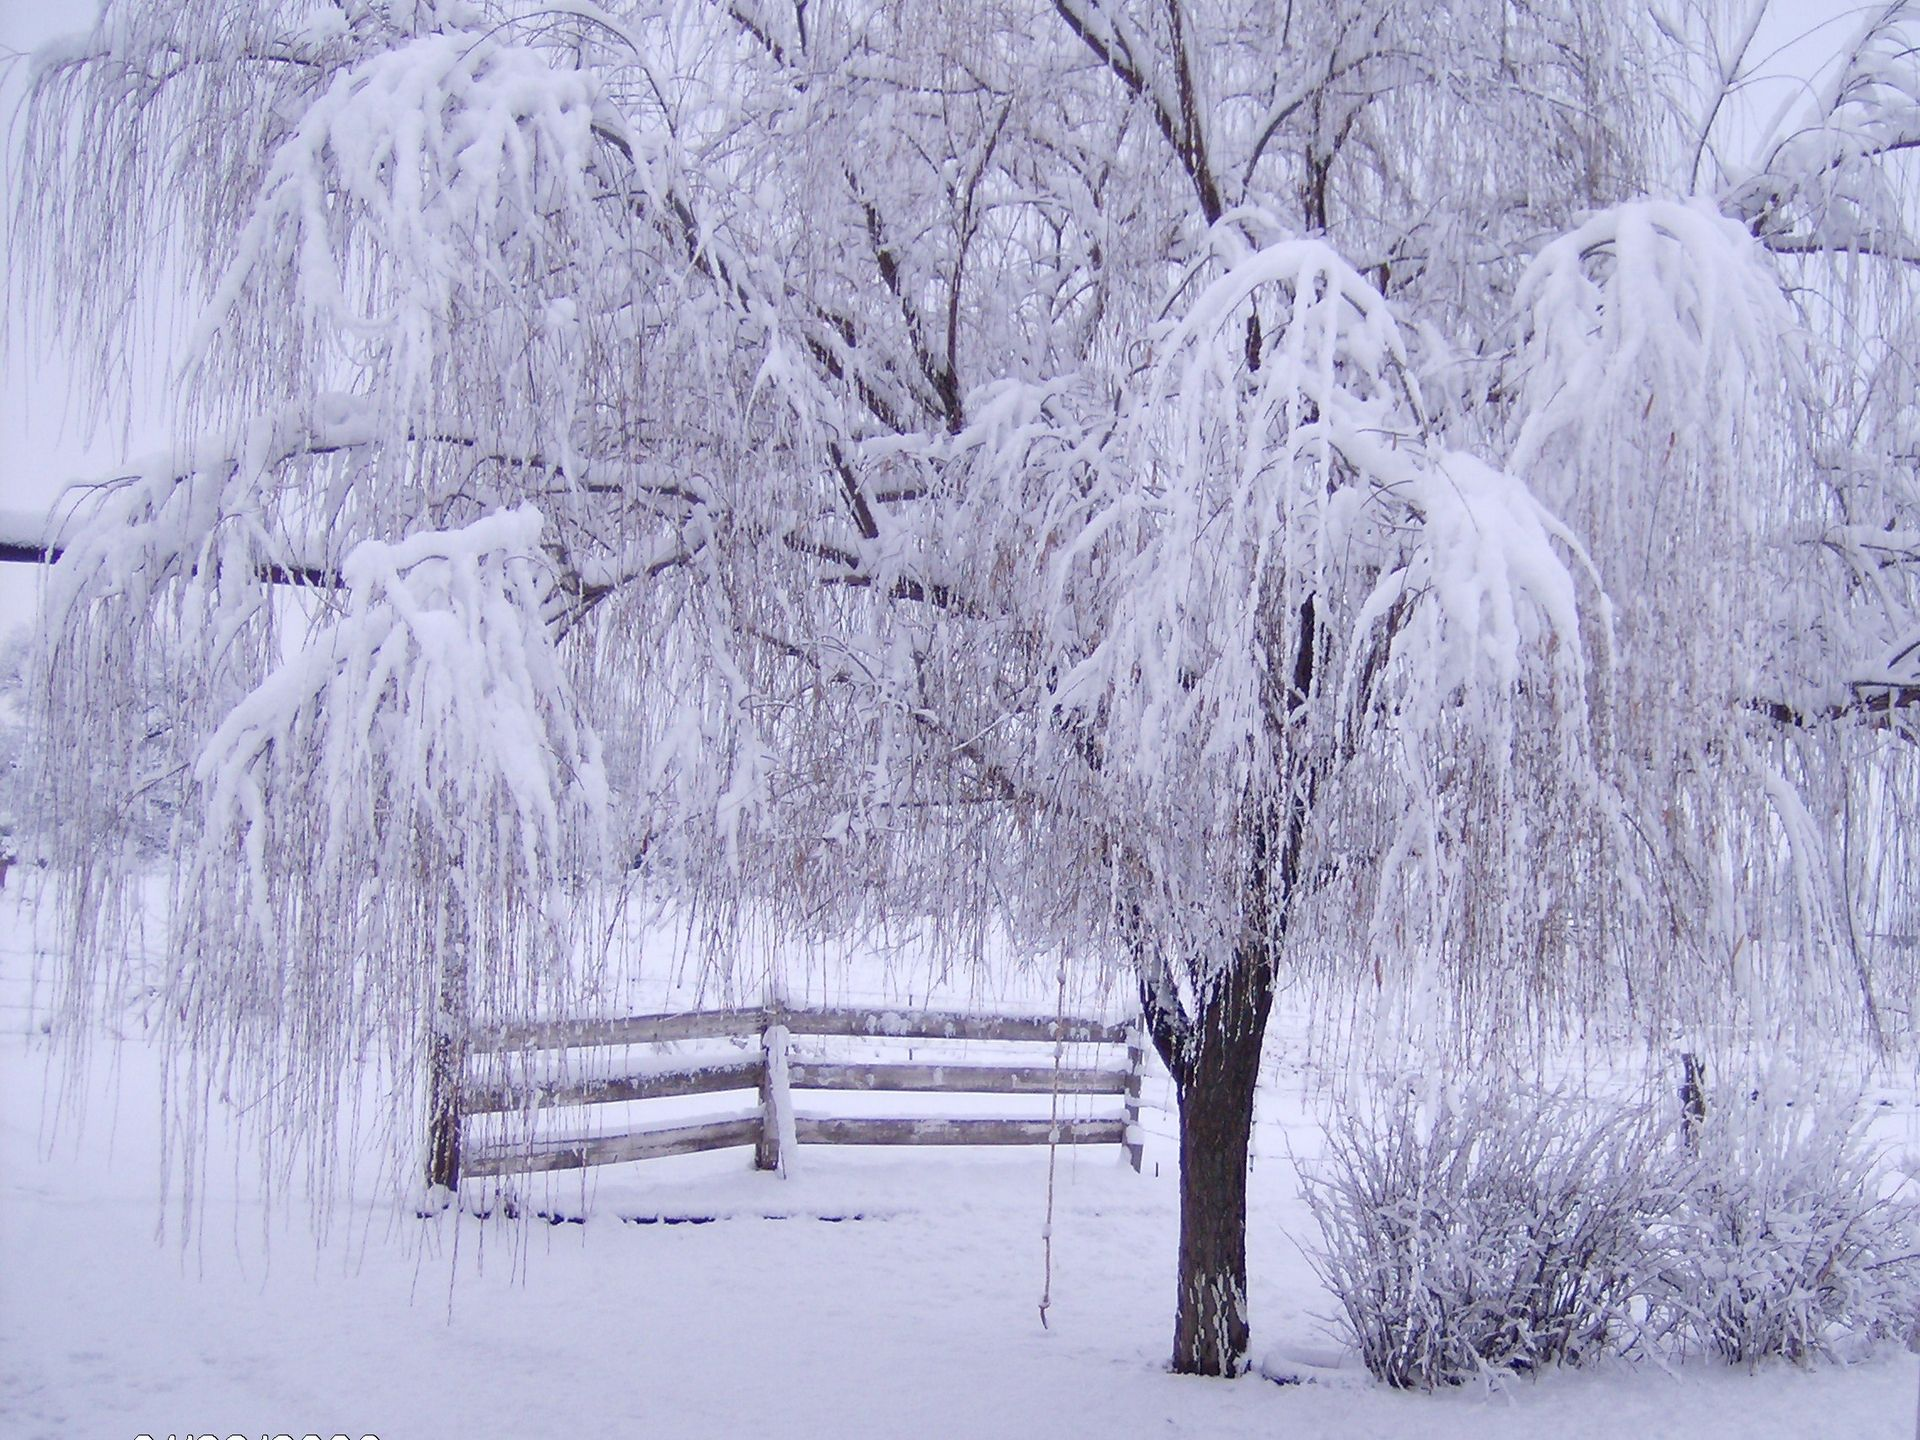 winter pics free download winter scene wallpaper download the free cold with